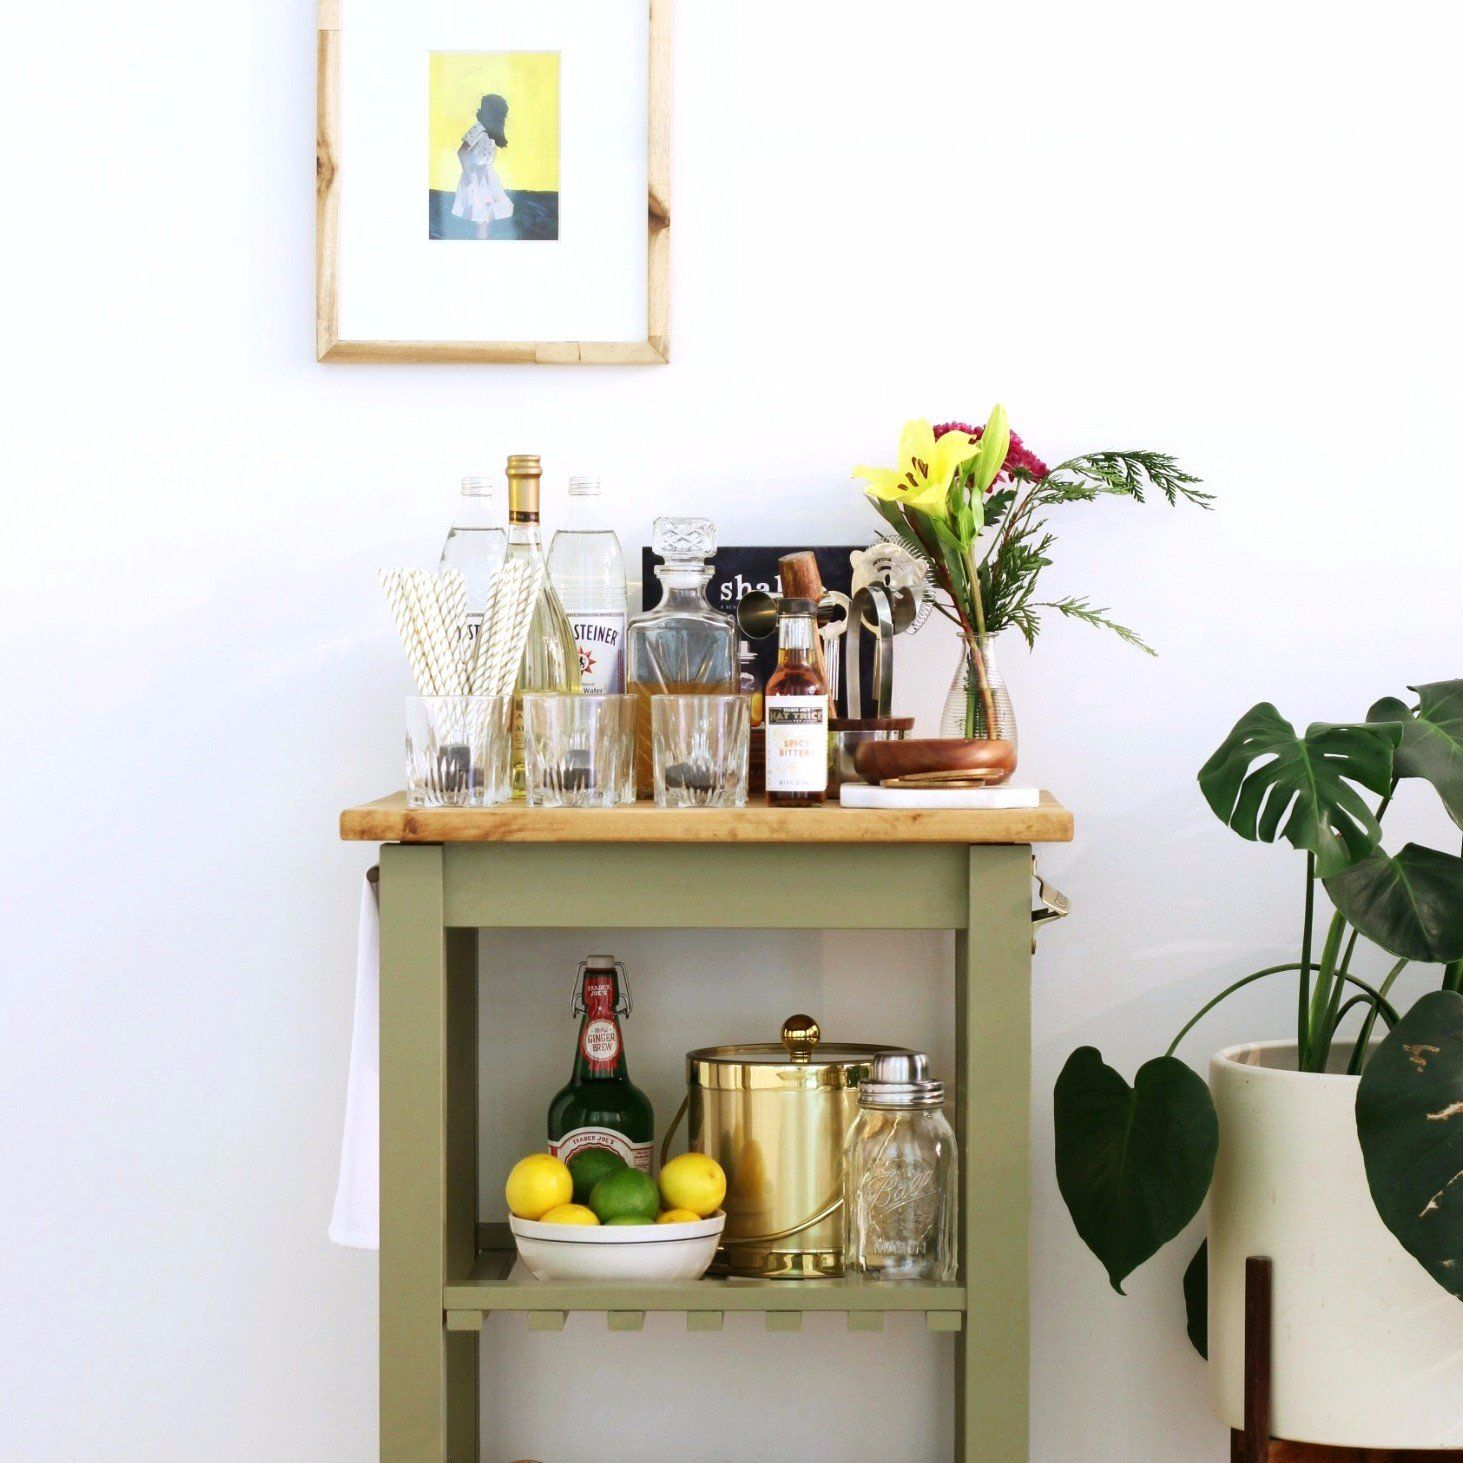 Image result for IKEA BEKVÄM kitchen trolley hacks | house ideas ...